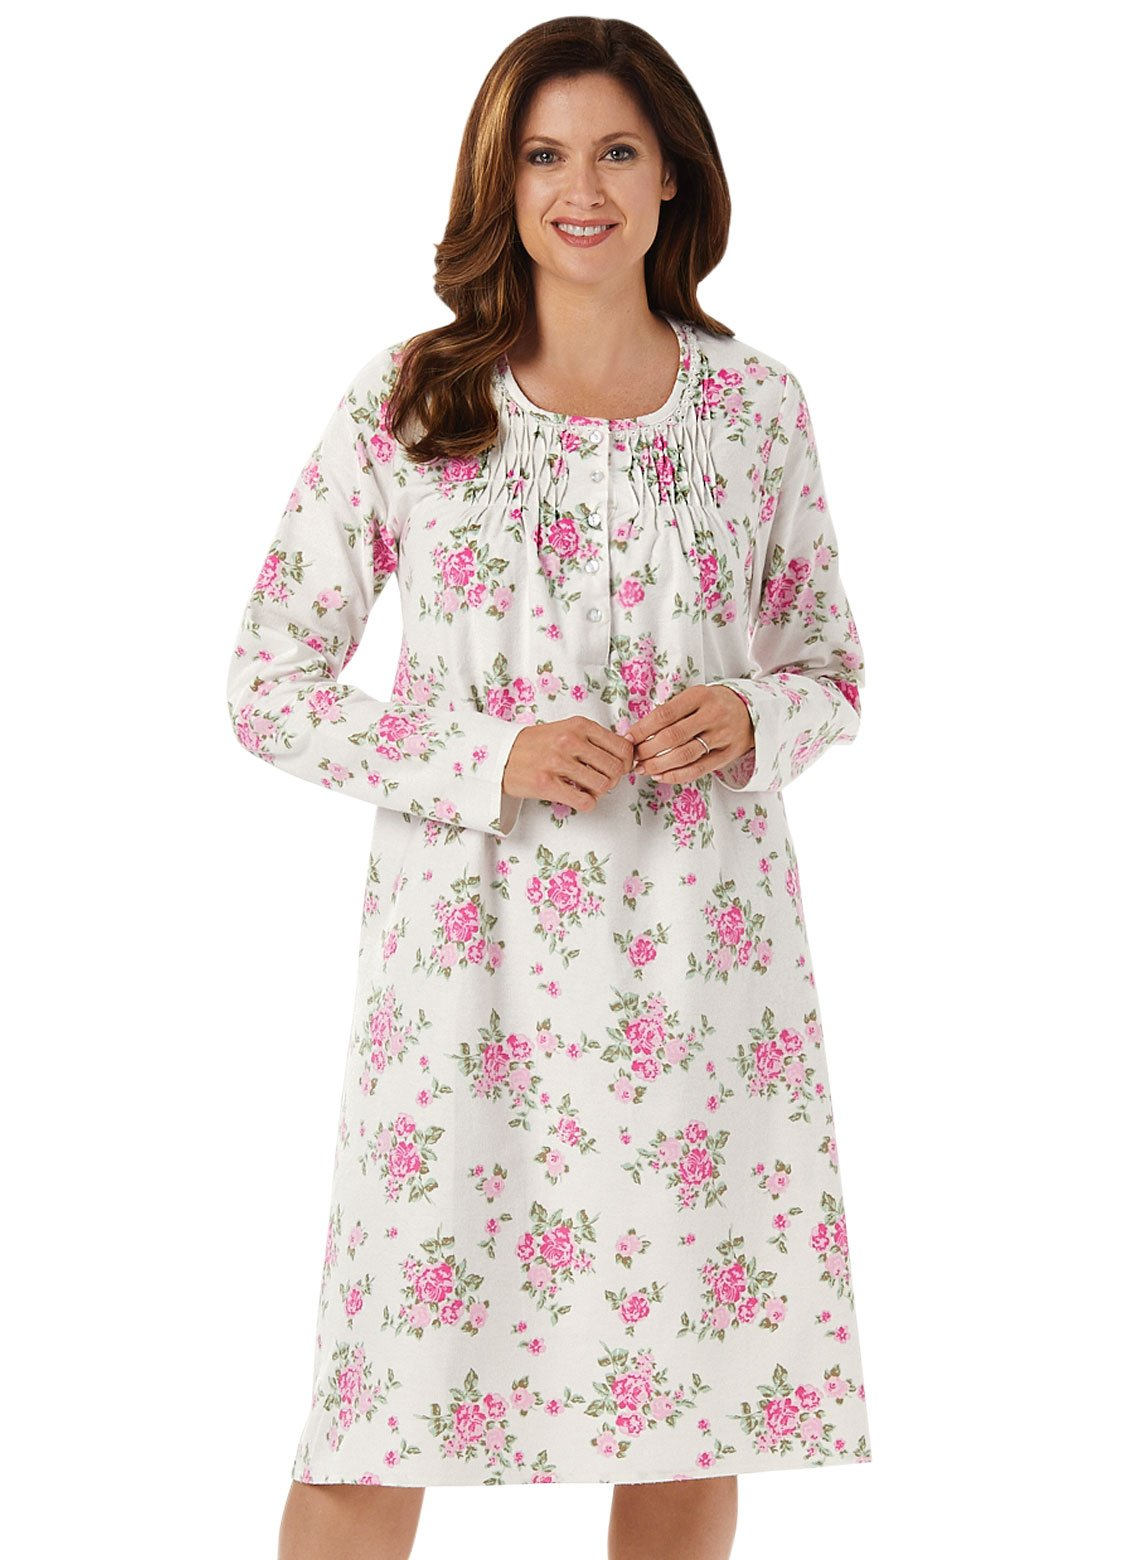 Carol Wright Gifts 100% Cotton Flannel Gown, Color Pink, Size Medium, Pink, Size Medium